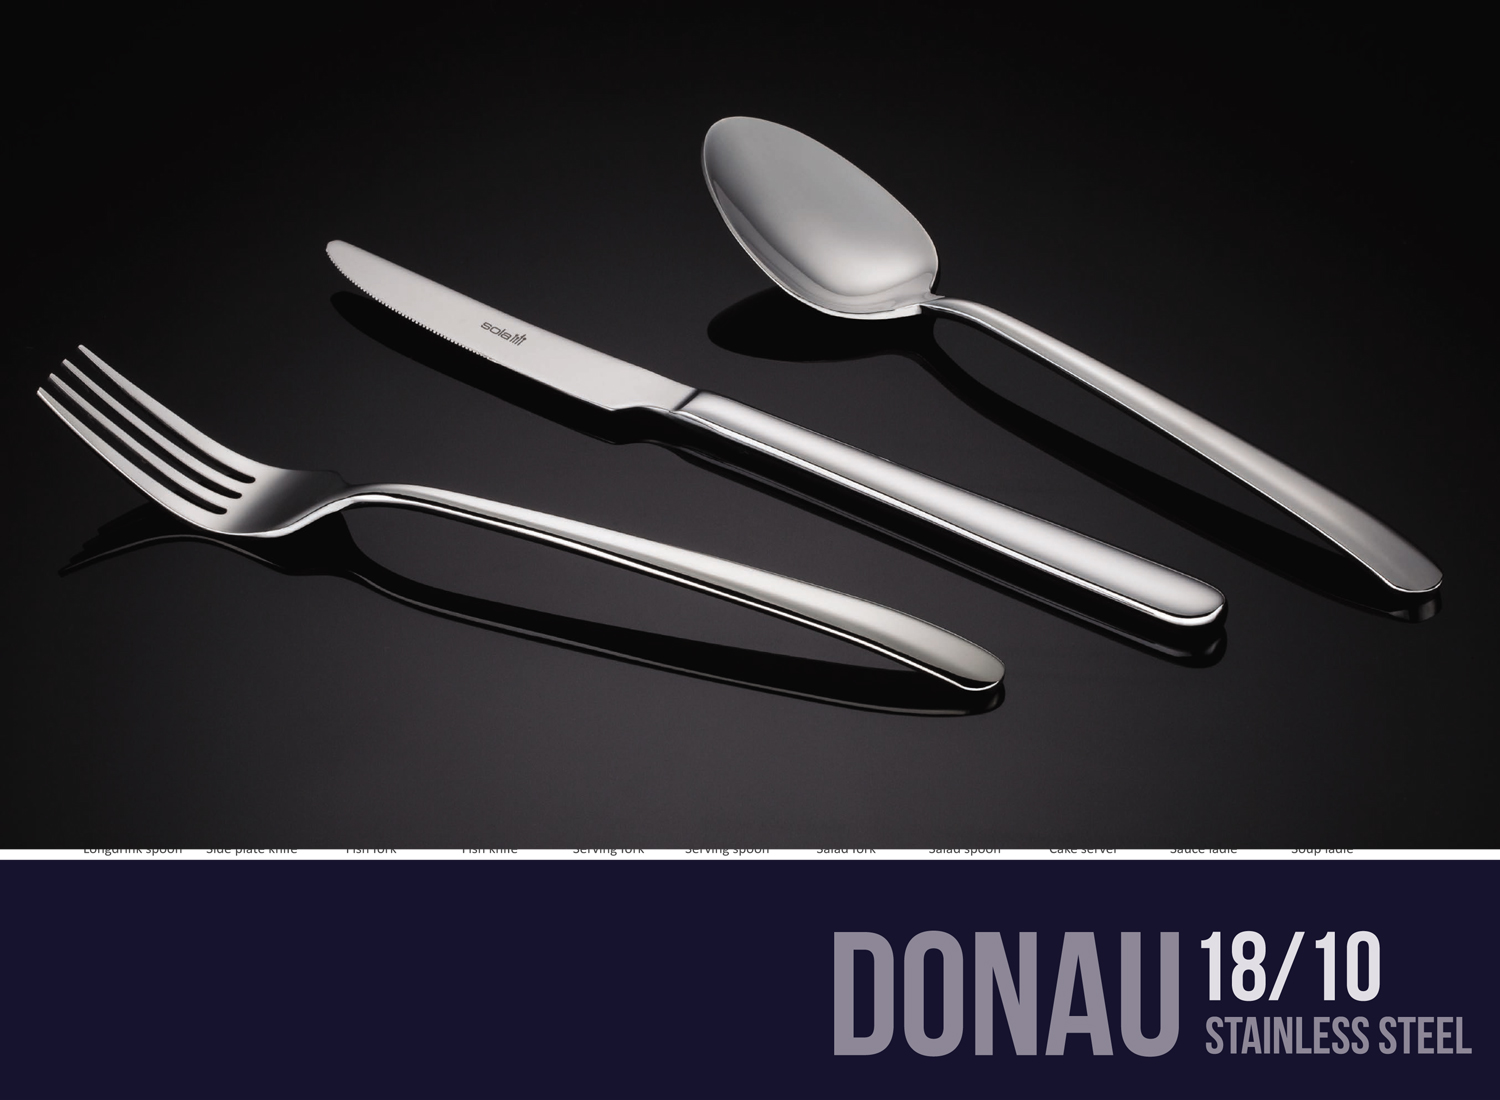 Donau Stainless Steel